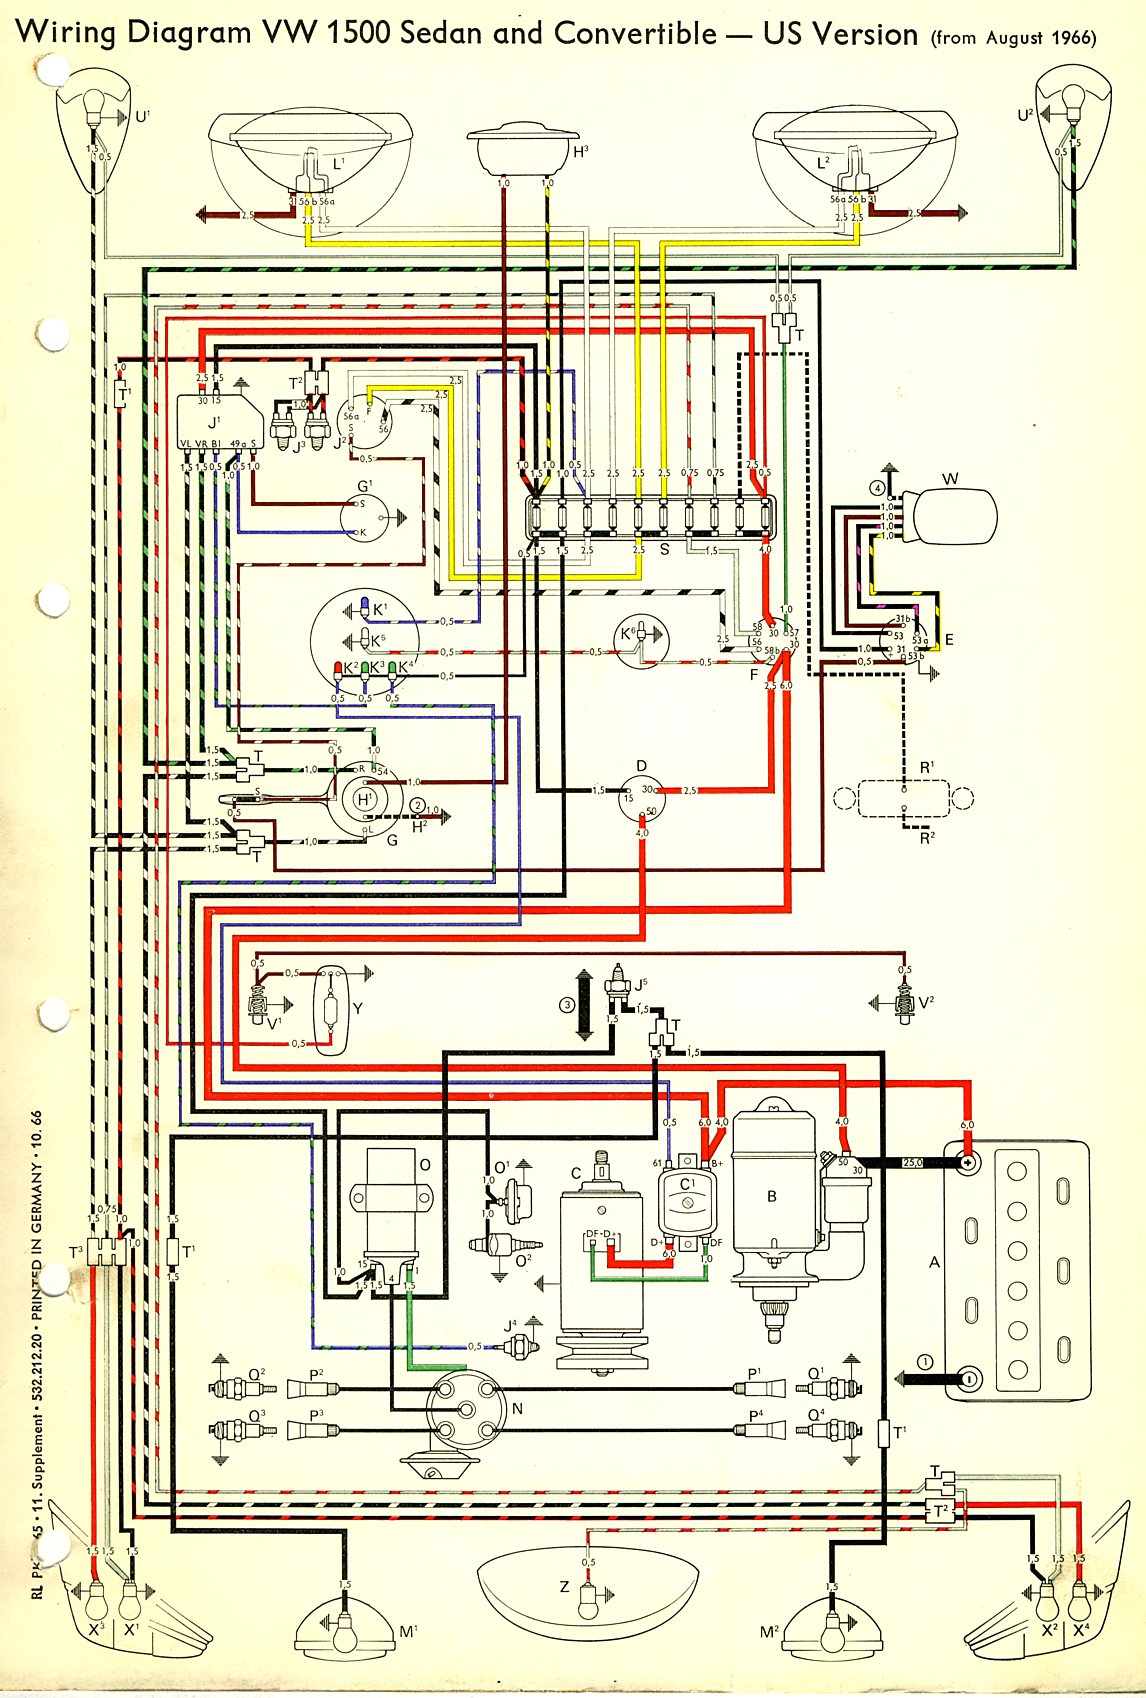 bosch internal regulator alternator wiring diagram dewalt chop saw parts 1971 vw data thesamba com type 1 diagrams 71 super beetle